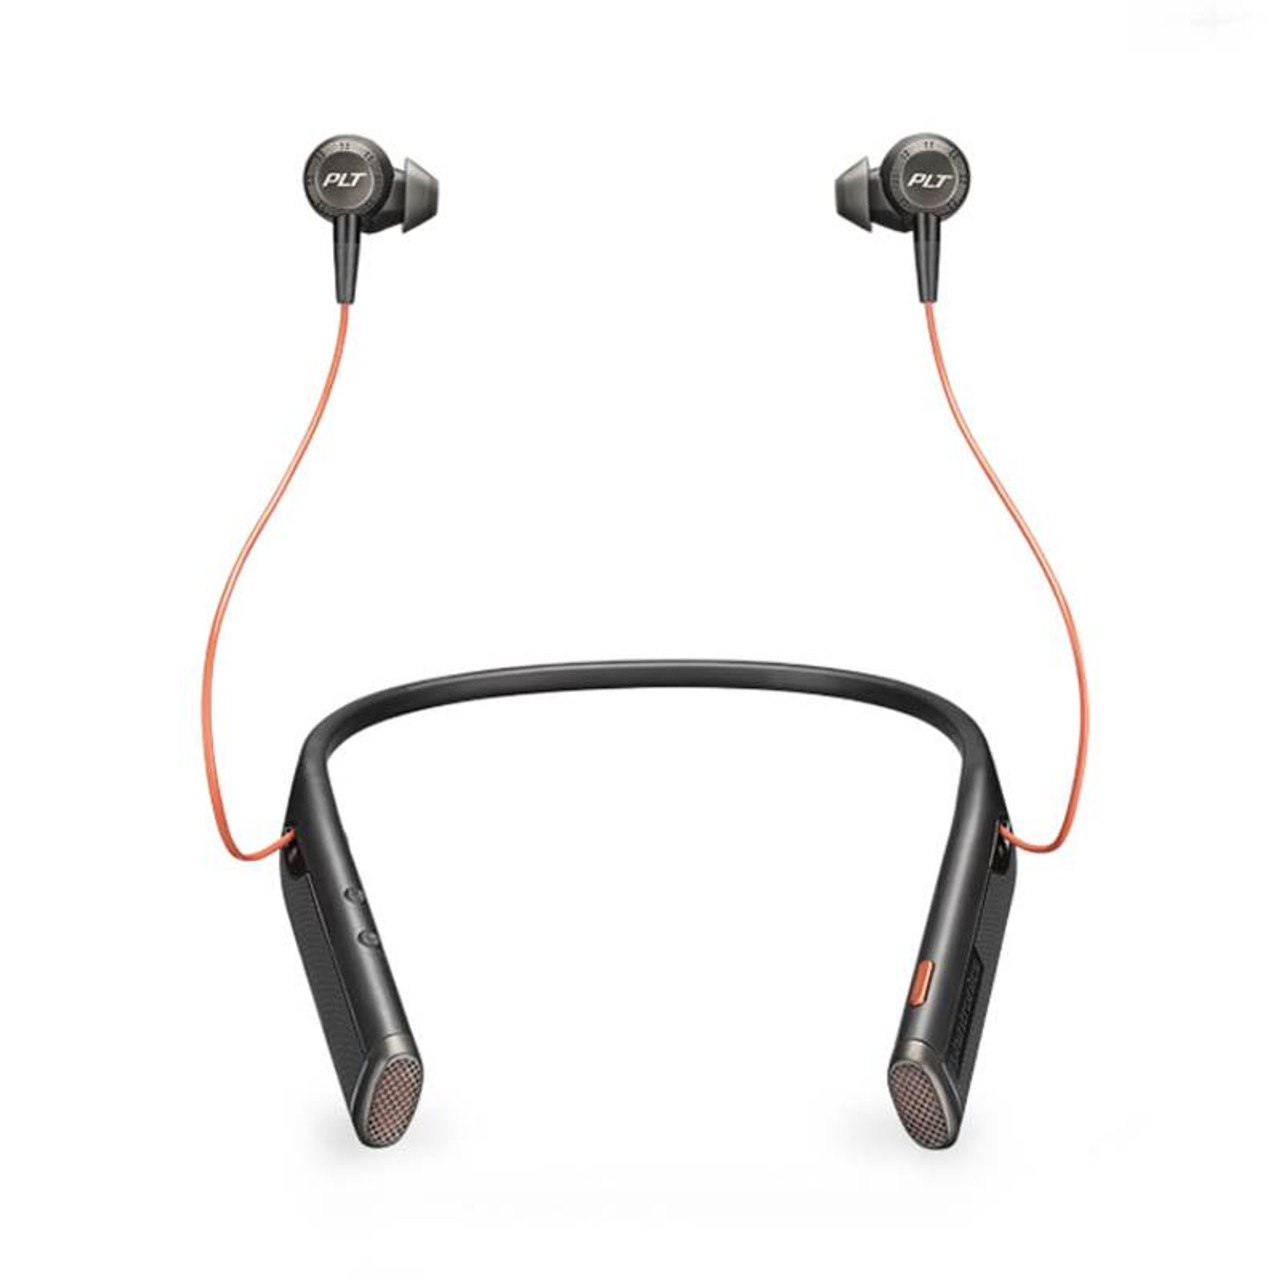 Image for Plantronic Voyager 6200 UC Bluetooth Neckband Headset with Earbuds - Black CX Computer Superstore